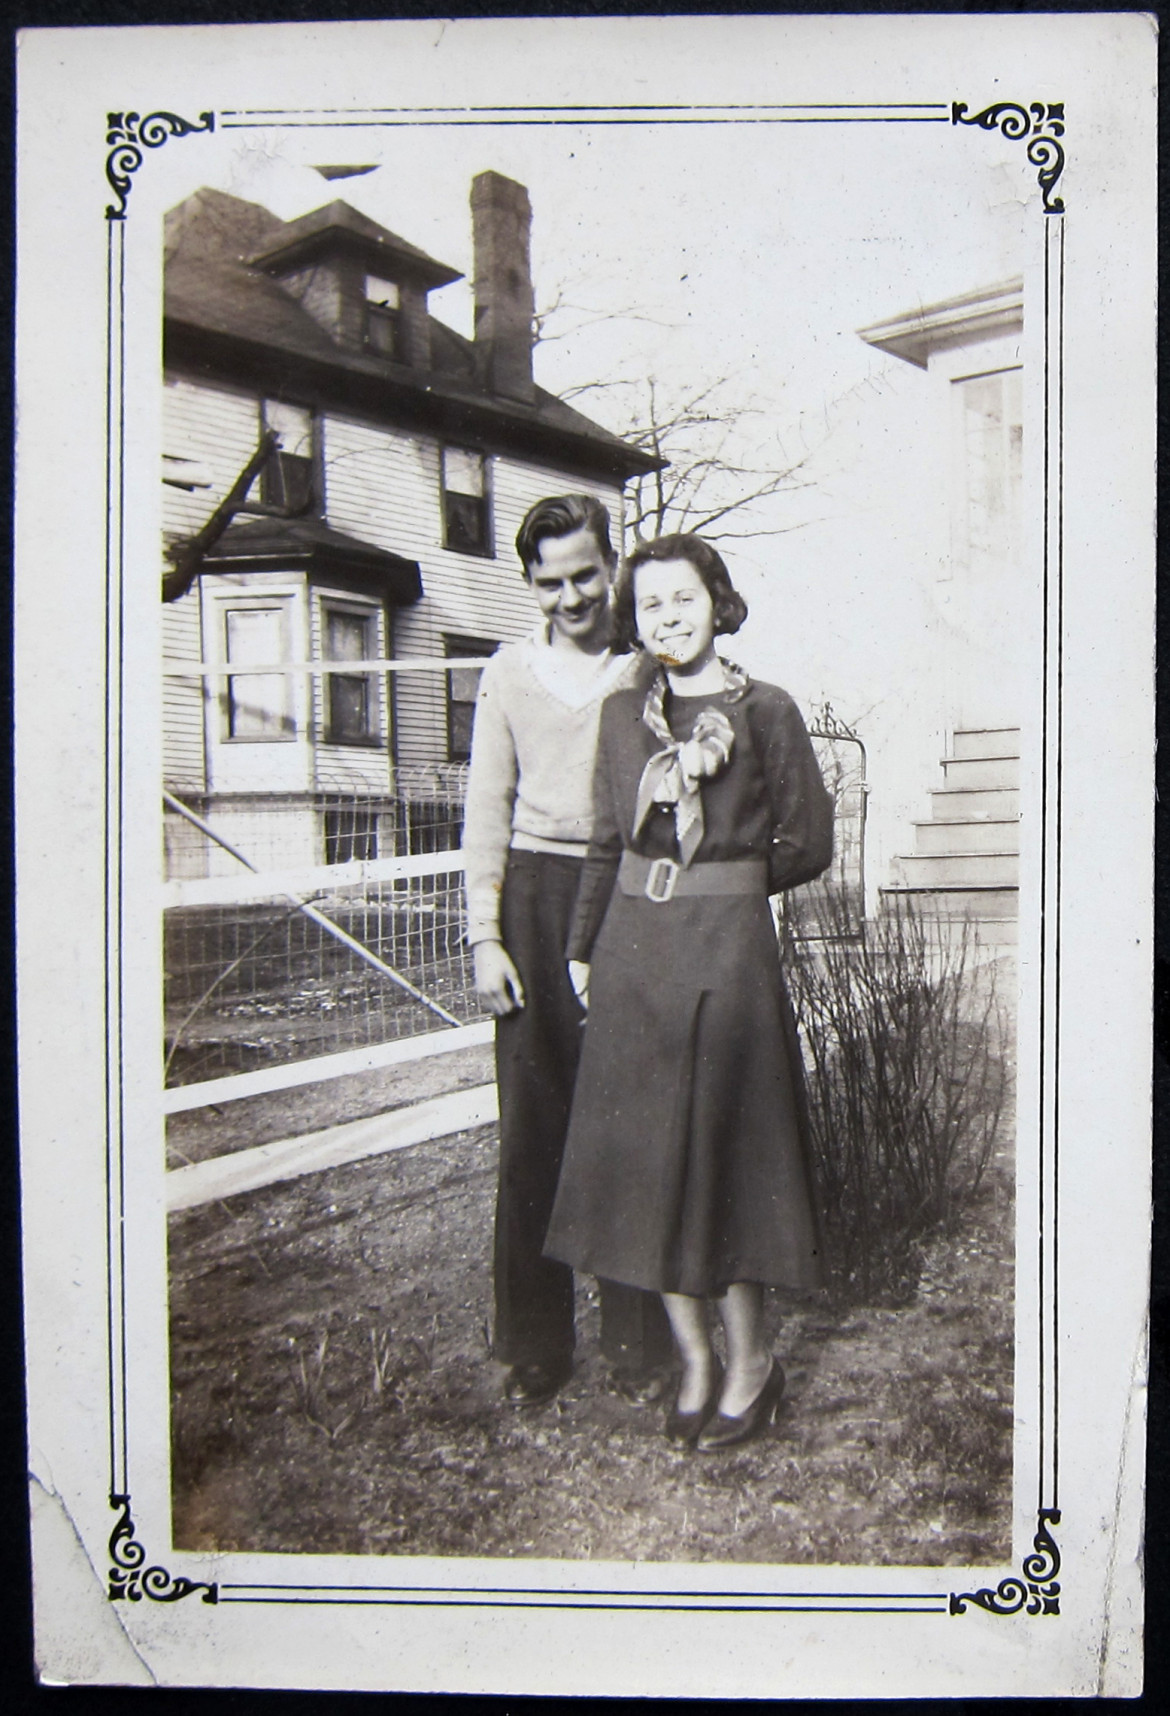 Marjorie with an unidentified friend with the neighbor's home in the rear.